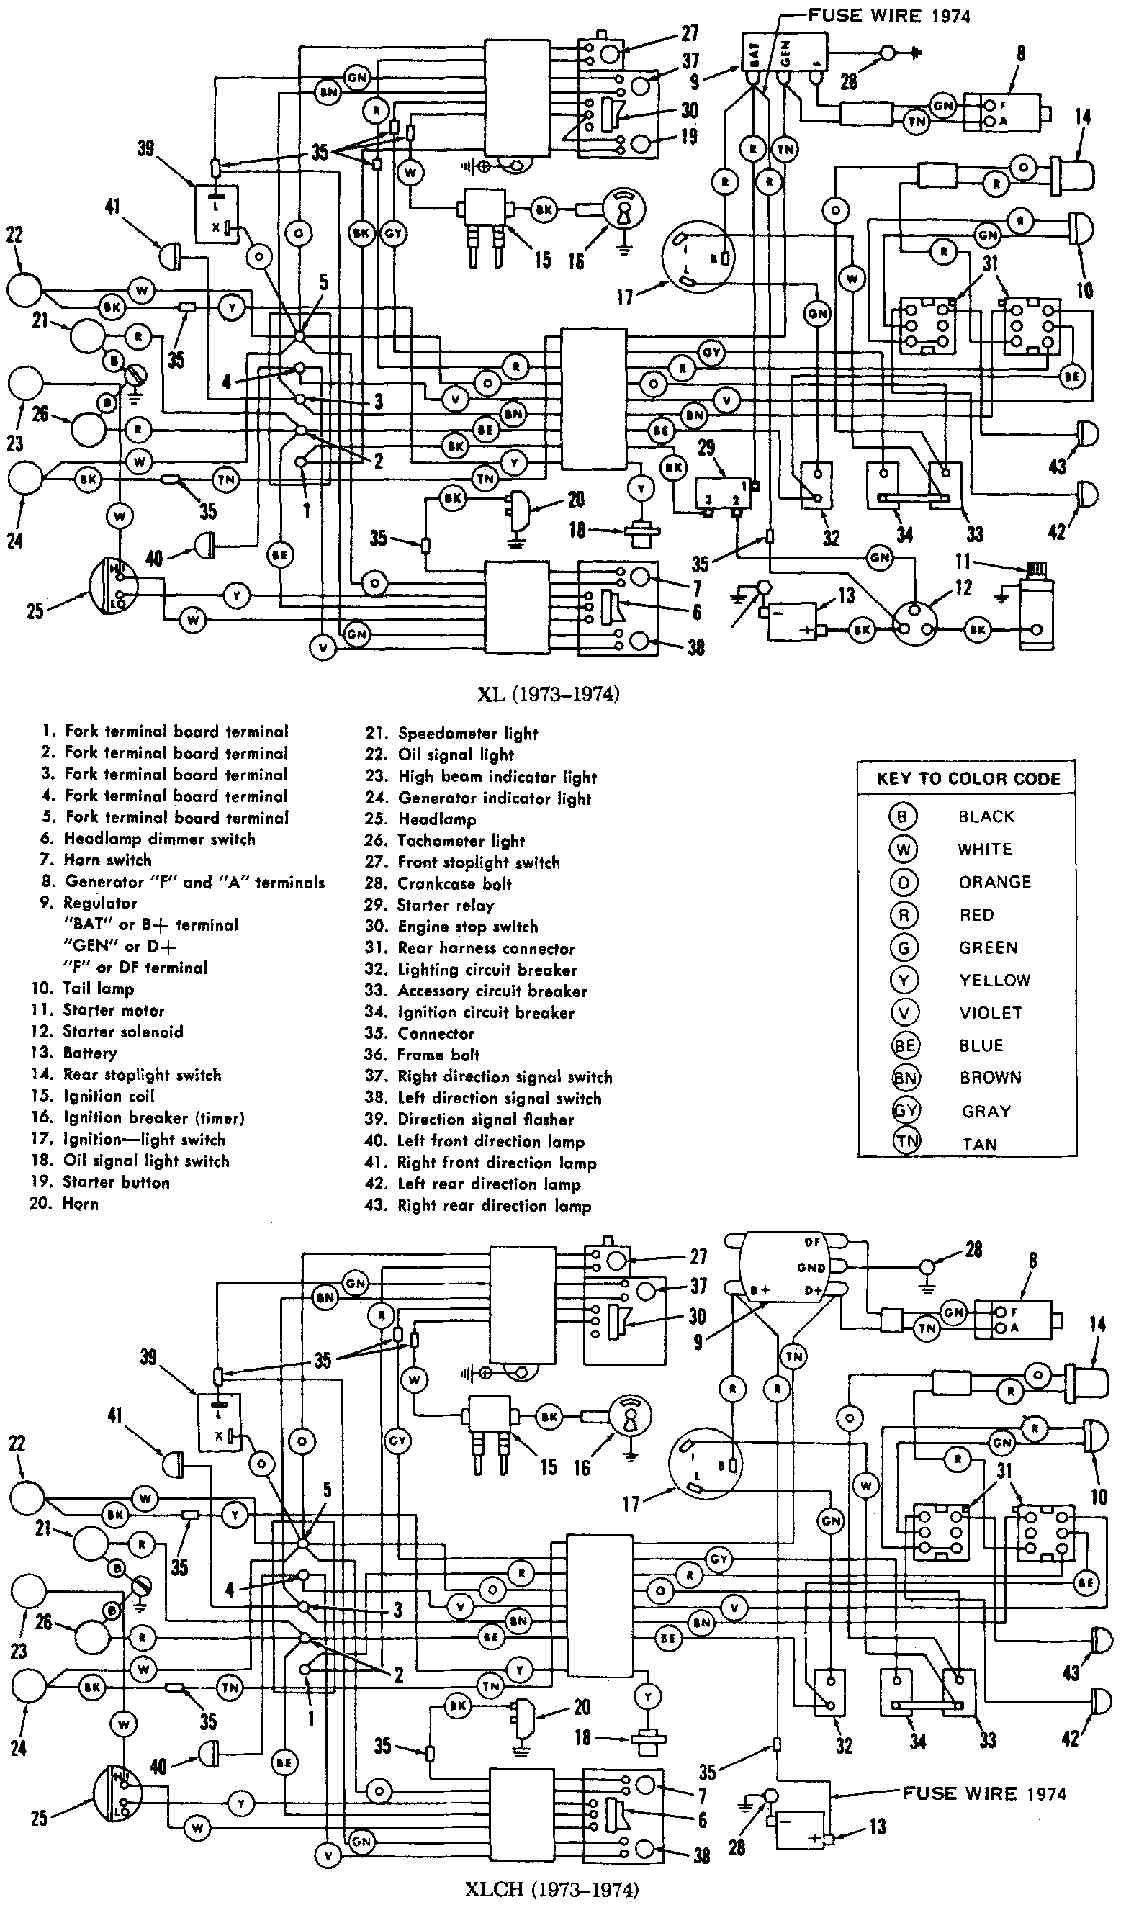 Harley Davidson Motorcycles Manual Pdf Wiring Diagram Fault Codes